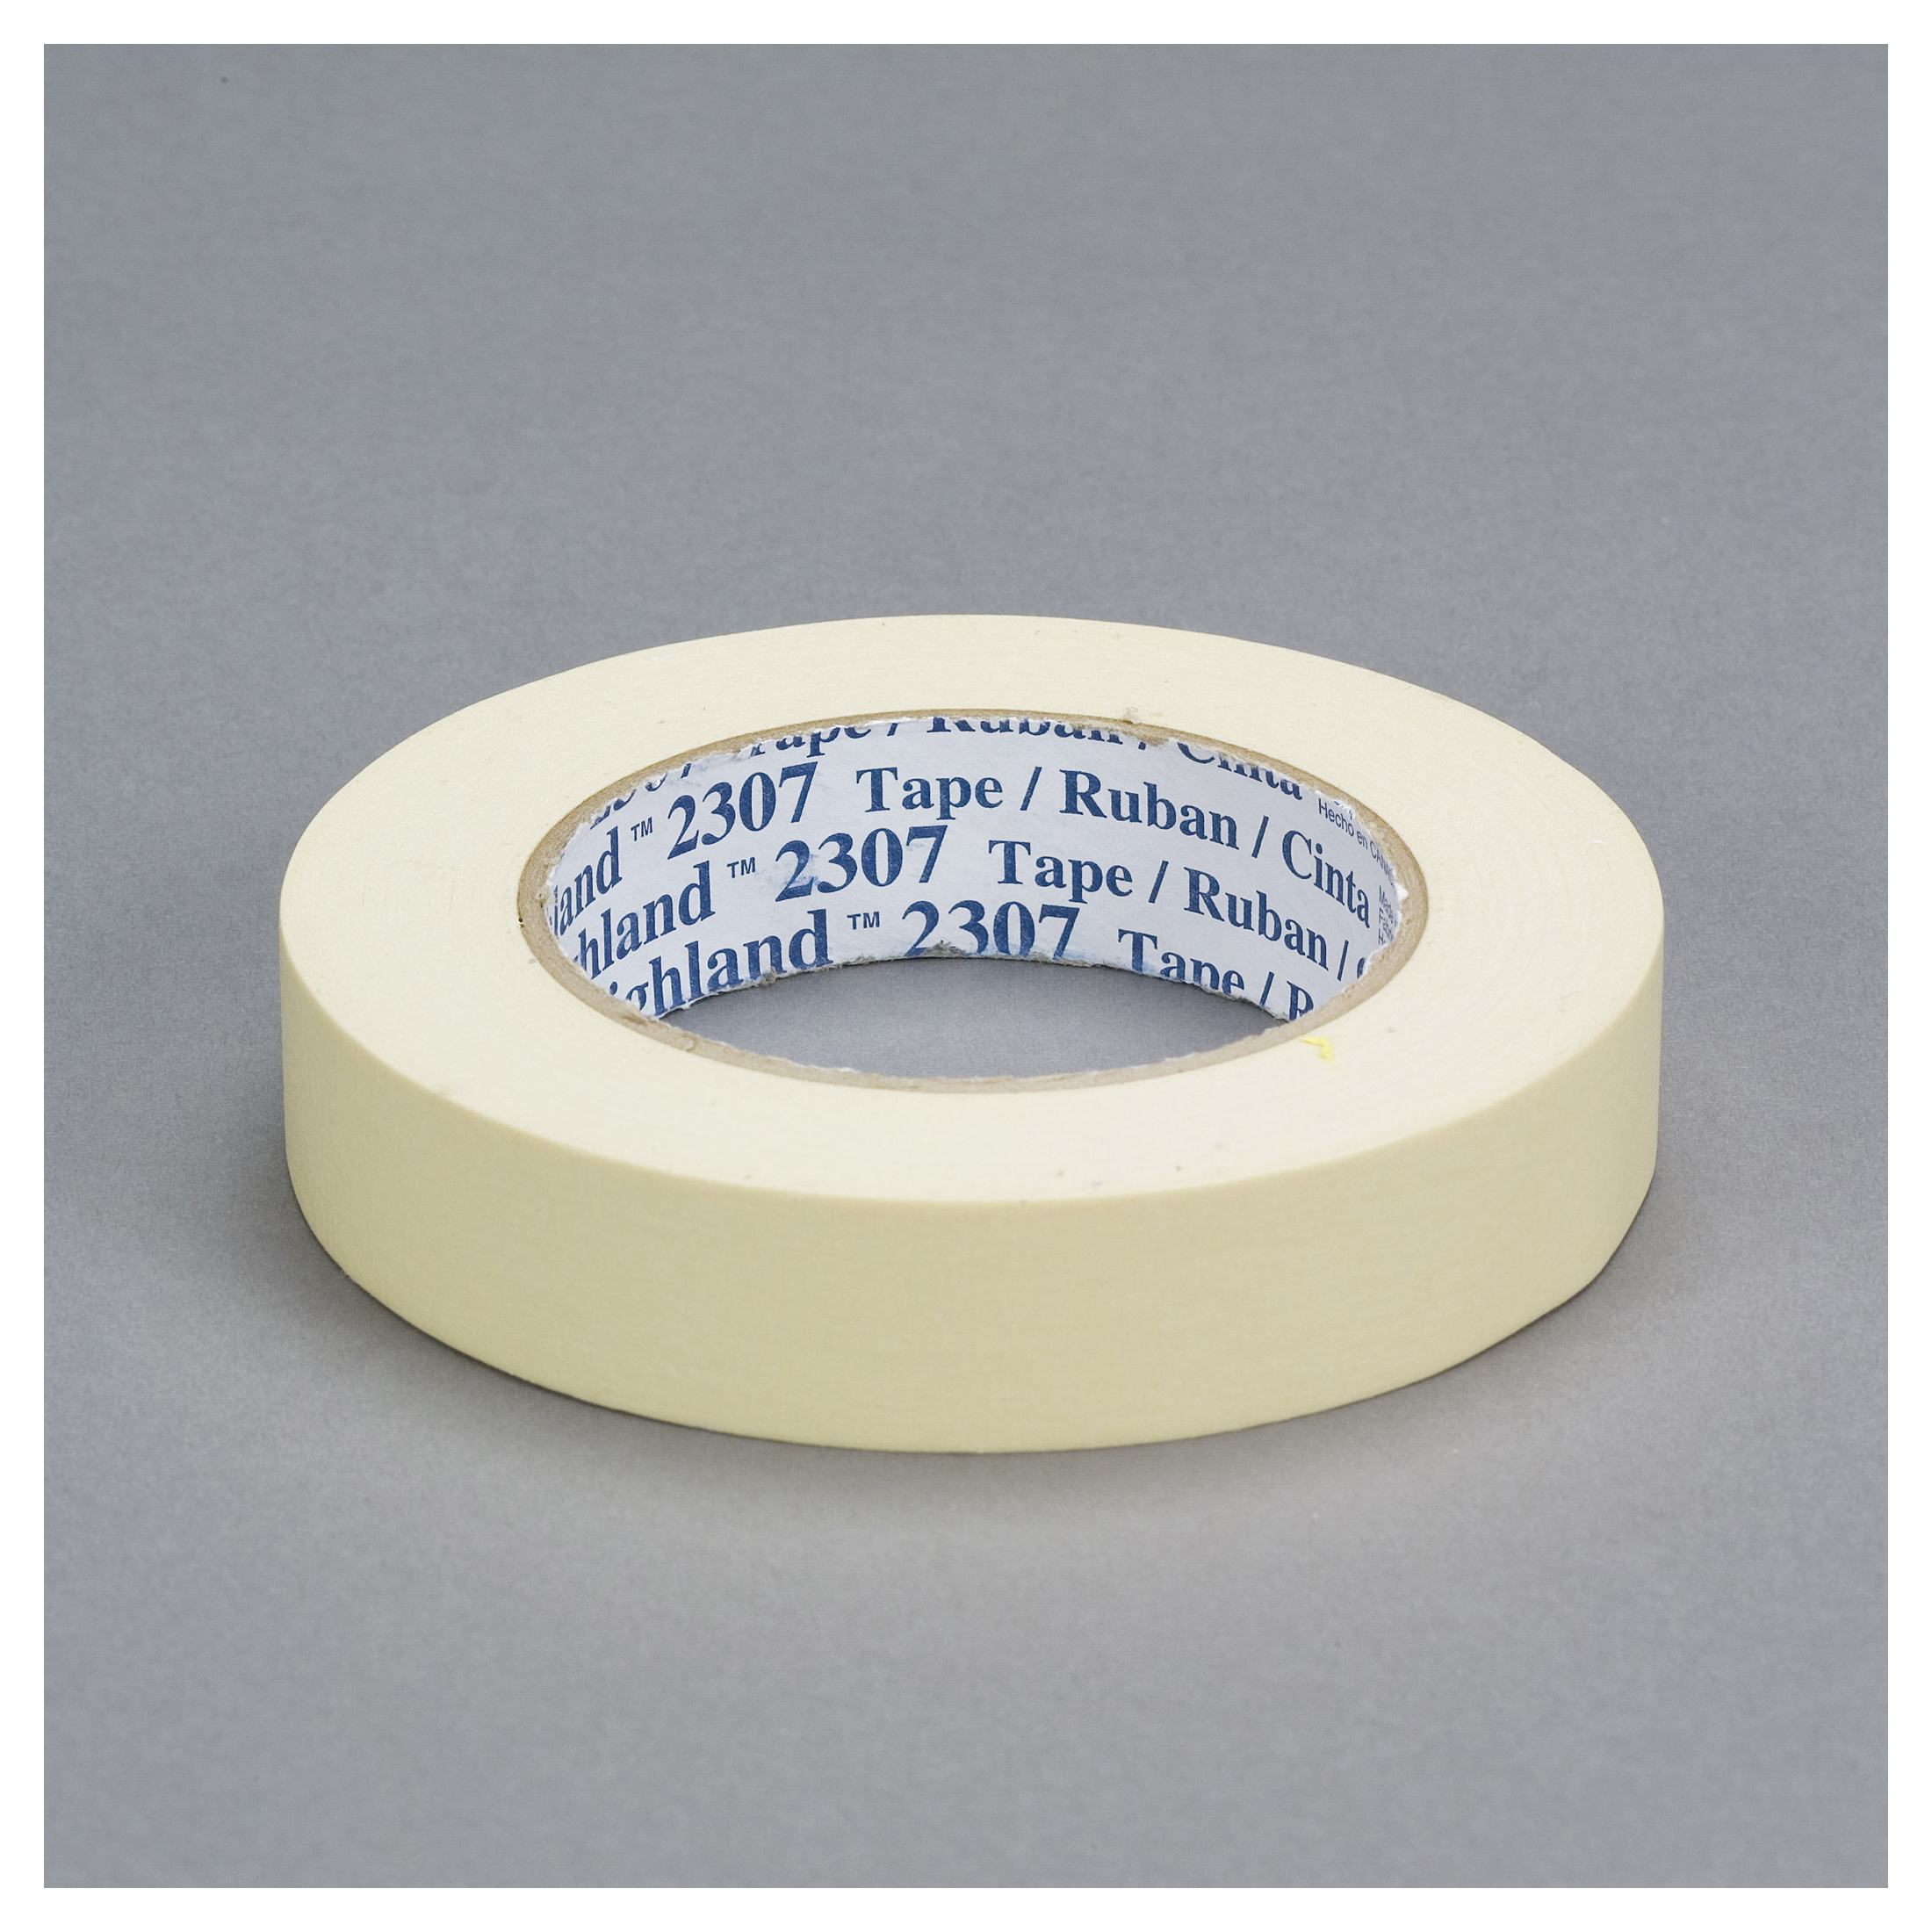 3M™ 021200-71120 2307 General Purpose Masking Tape, 55 m L x 48 mm W, 5.2 mil THK, Rubber Adhesive, Crepe Paper Backing